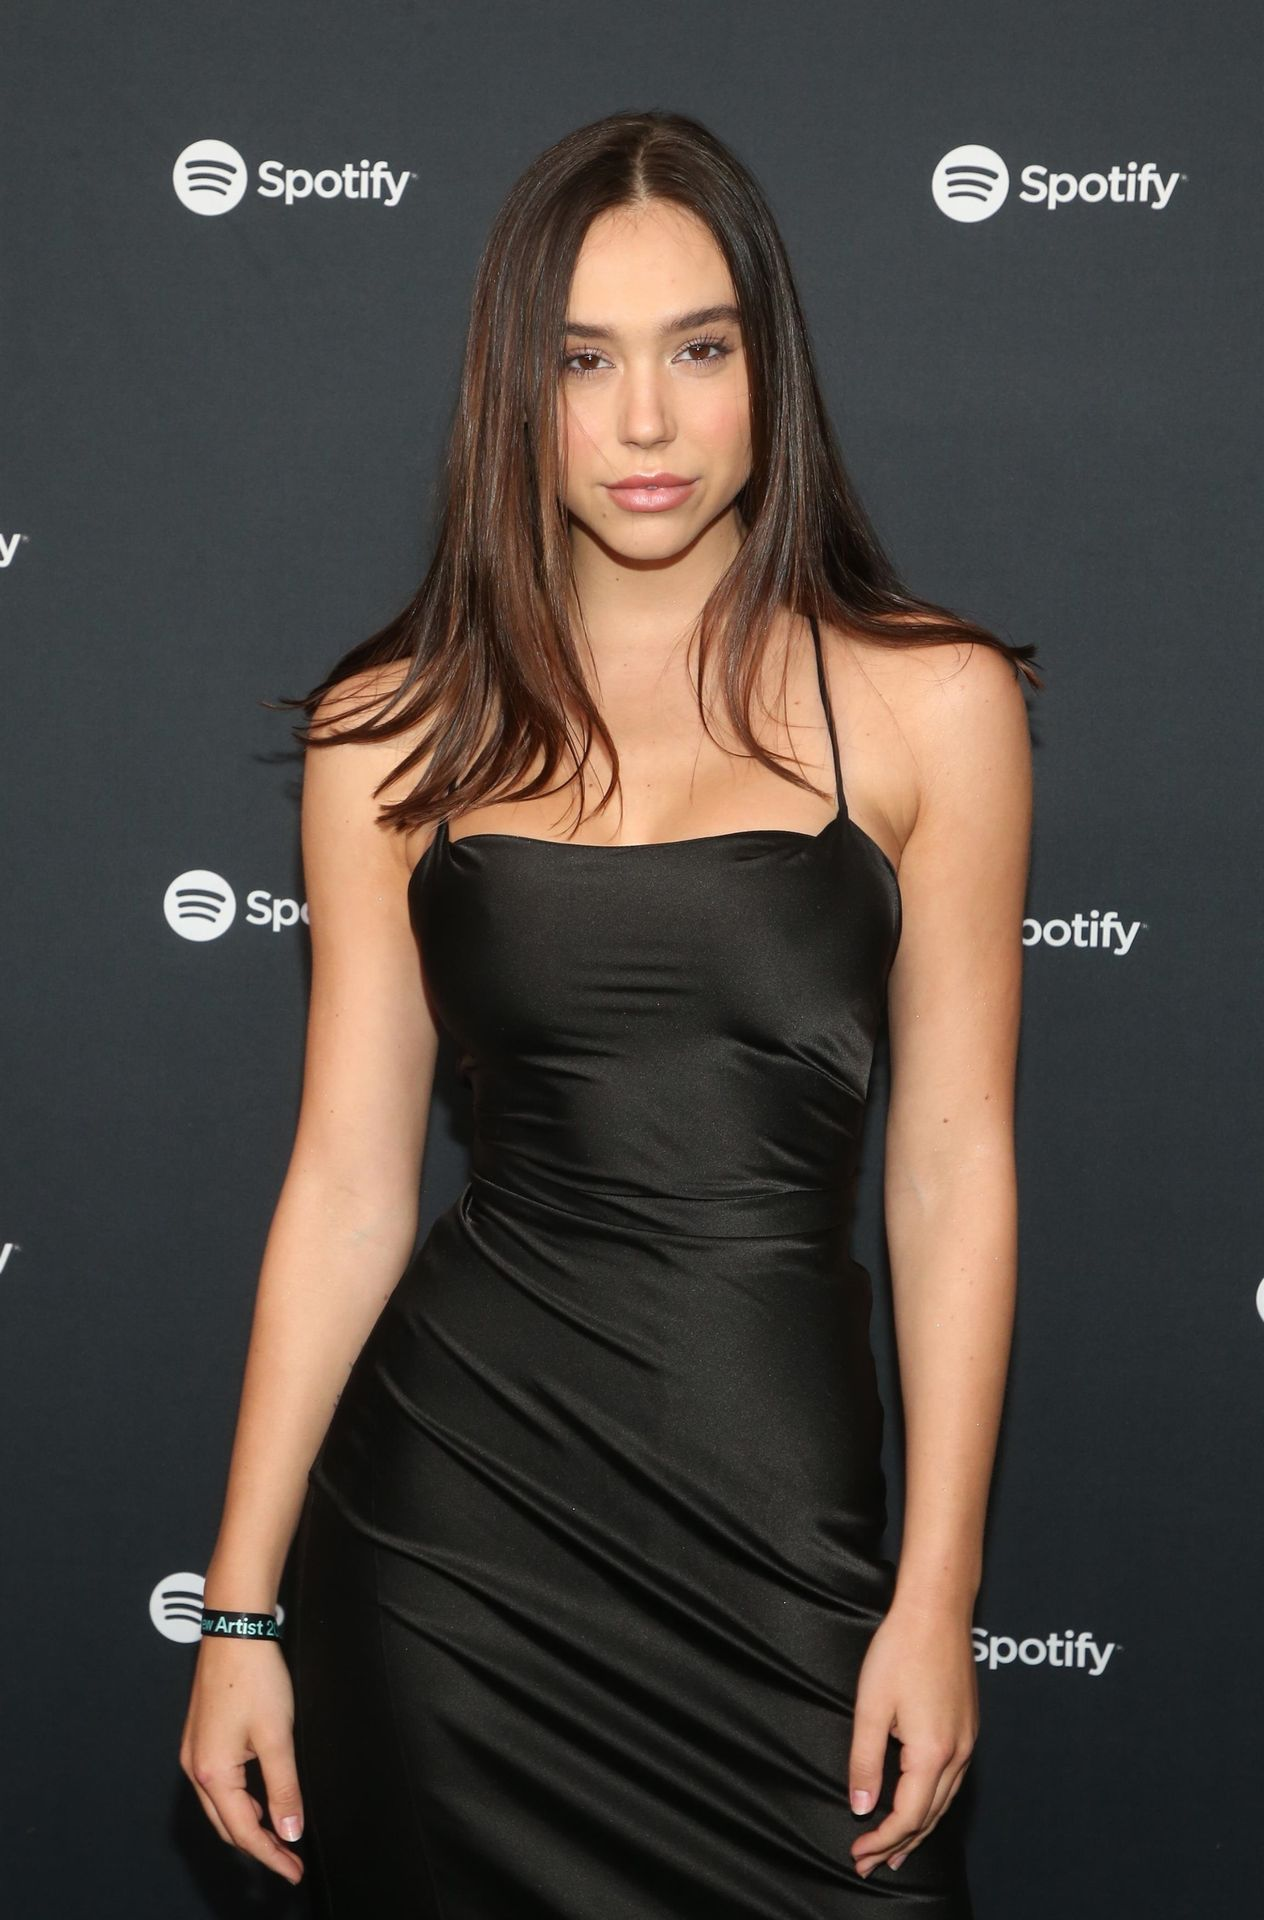 Alexis Ren Shows Off Her Tits At The Spotify Best New Artist Party 0004